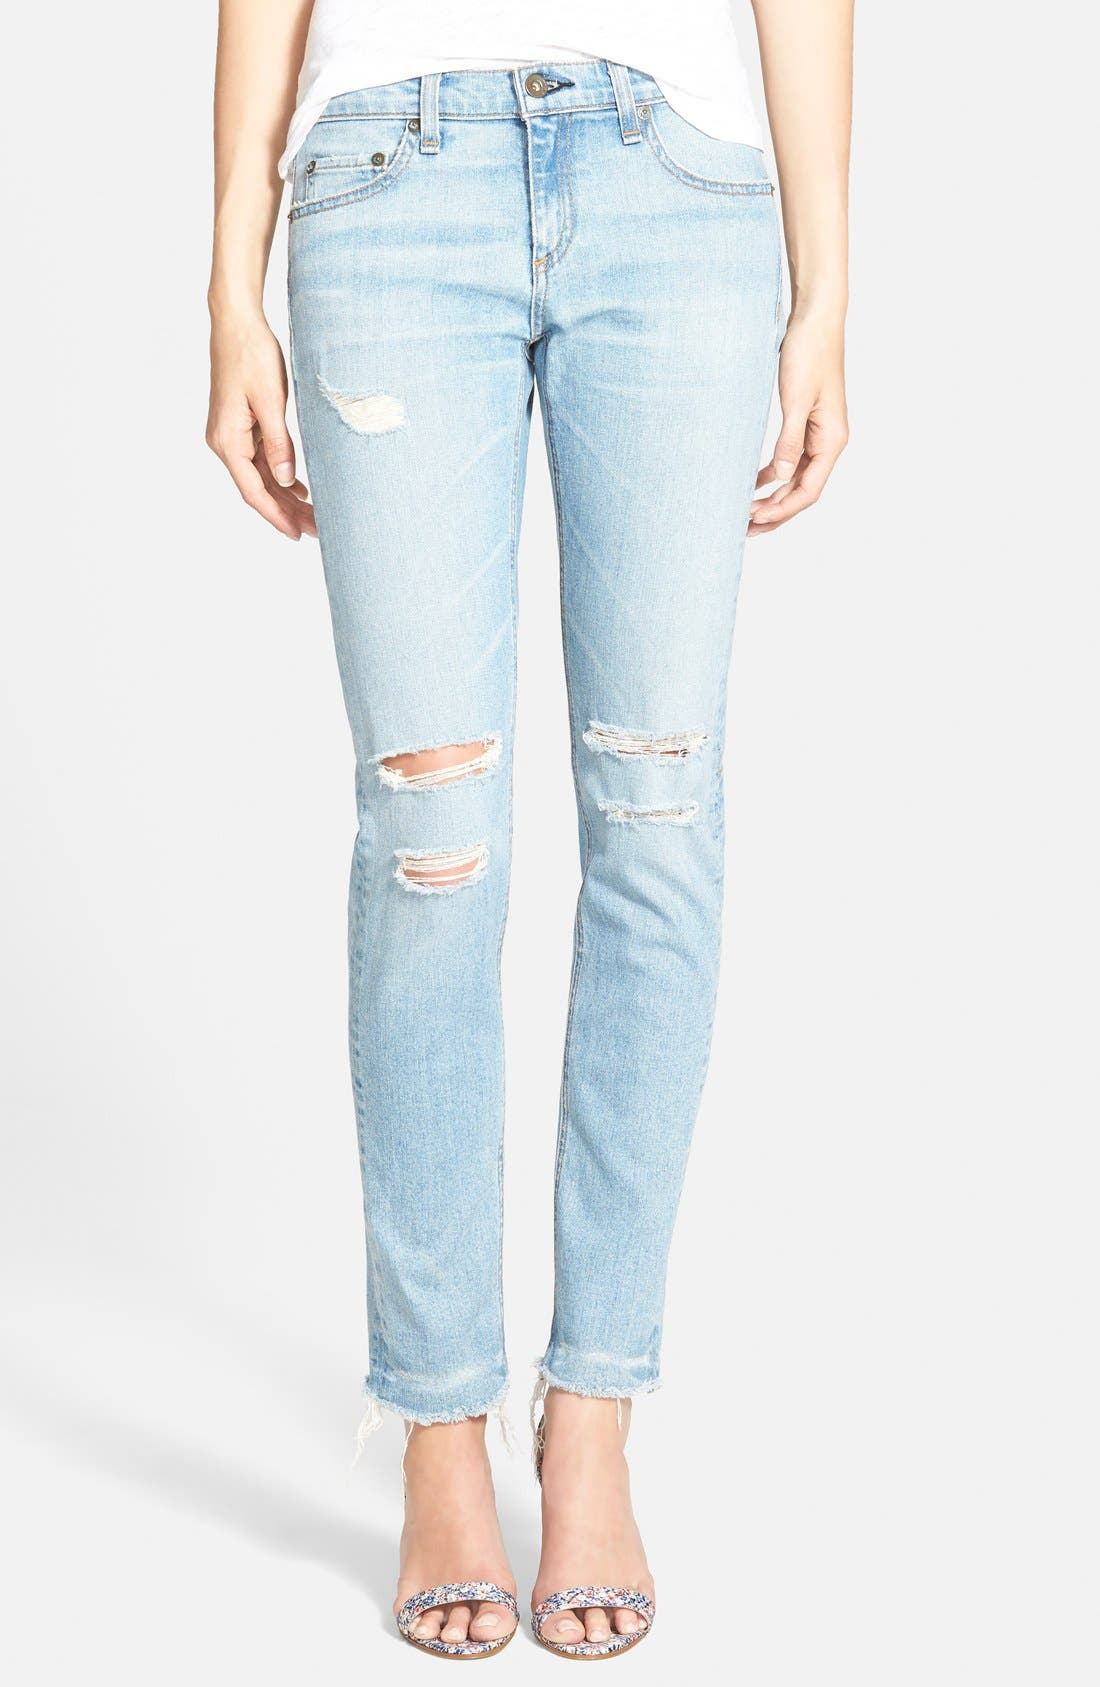 RAG & BONE JEAN 'Dre' Distressed Ankle Jeans, Main, color, 400